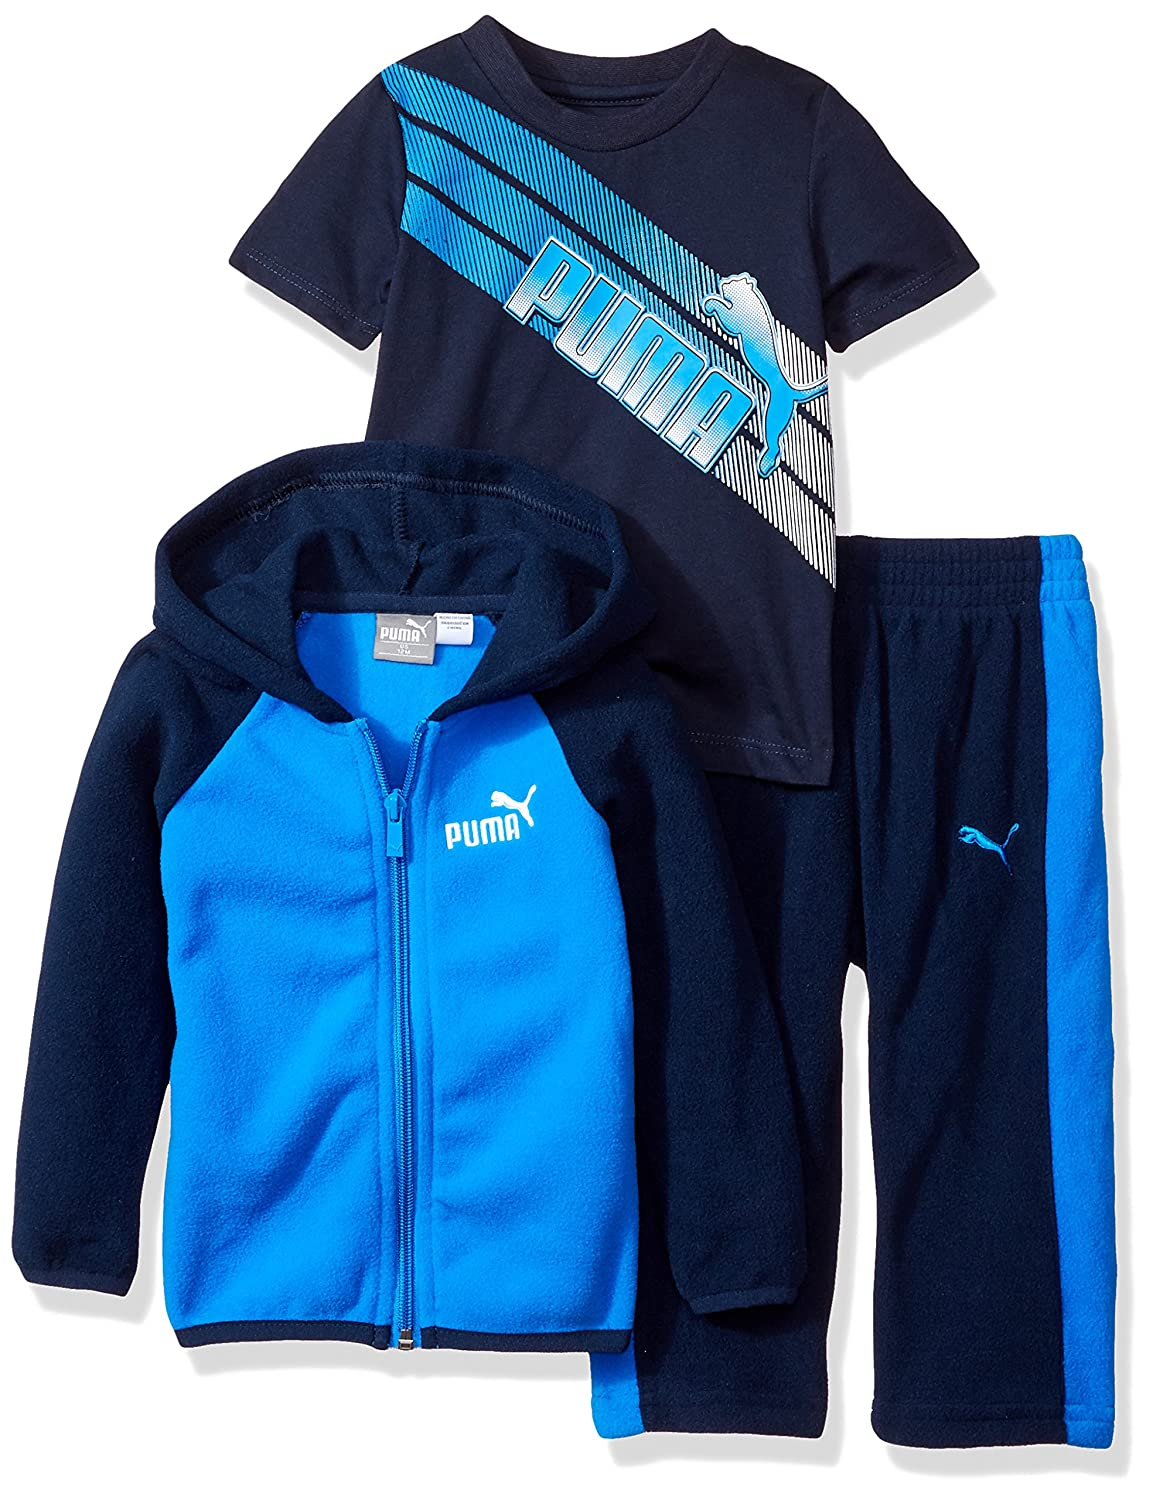 PUMA Boys Little Boys Boys' Three Piece Hoodie and Tee Set Smoke Grey 6 71175393FAZ-P030